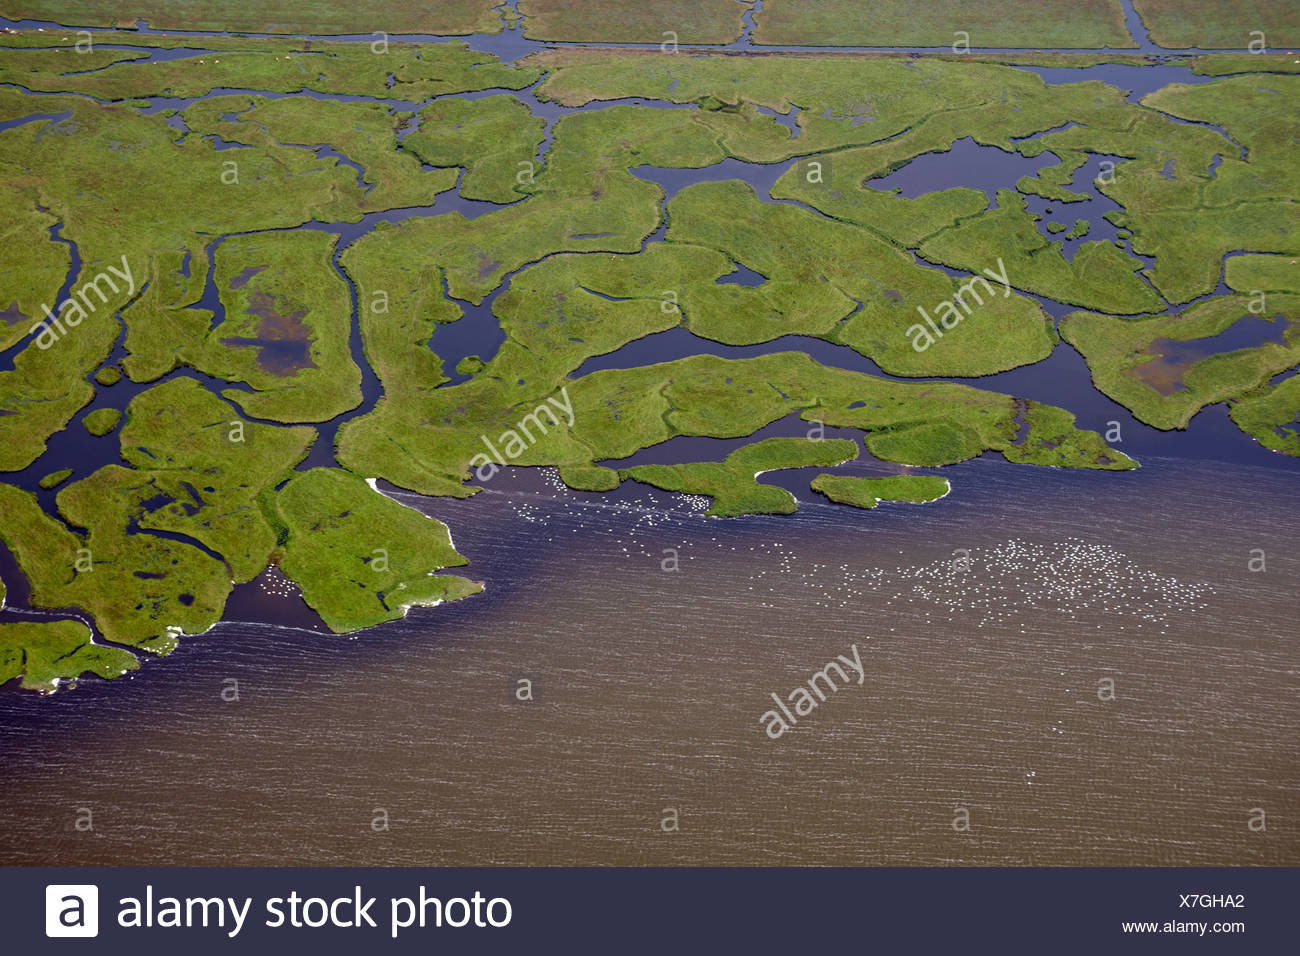 Several rivers flowing into a body of water, aerial view - Stock Image